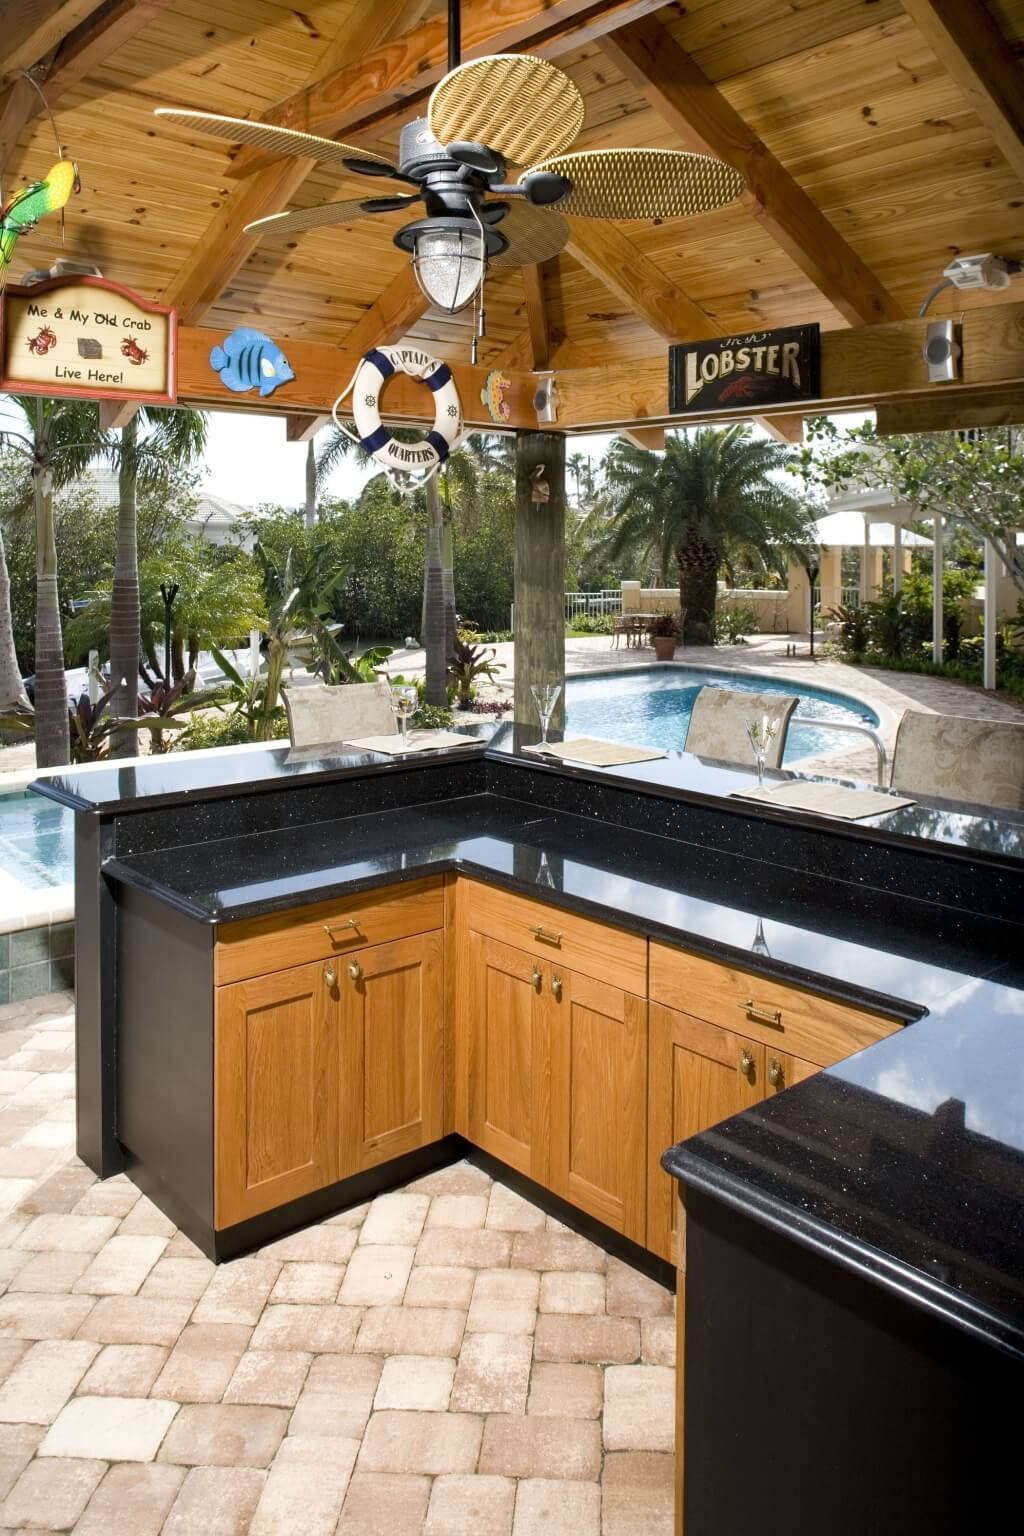 Attractive Outdoor Kitchen Ideas With Ceiling Fans And Black Granite Countertops Using Wooden Cabin Outdoor Kitchen Design Outdoor Kitchen Outdoor Kitchen Bars